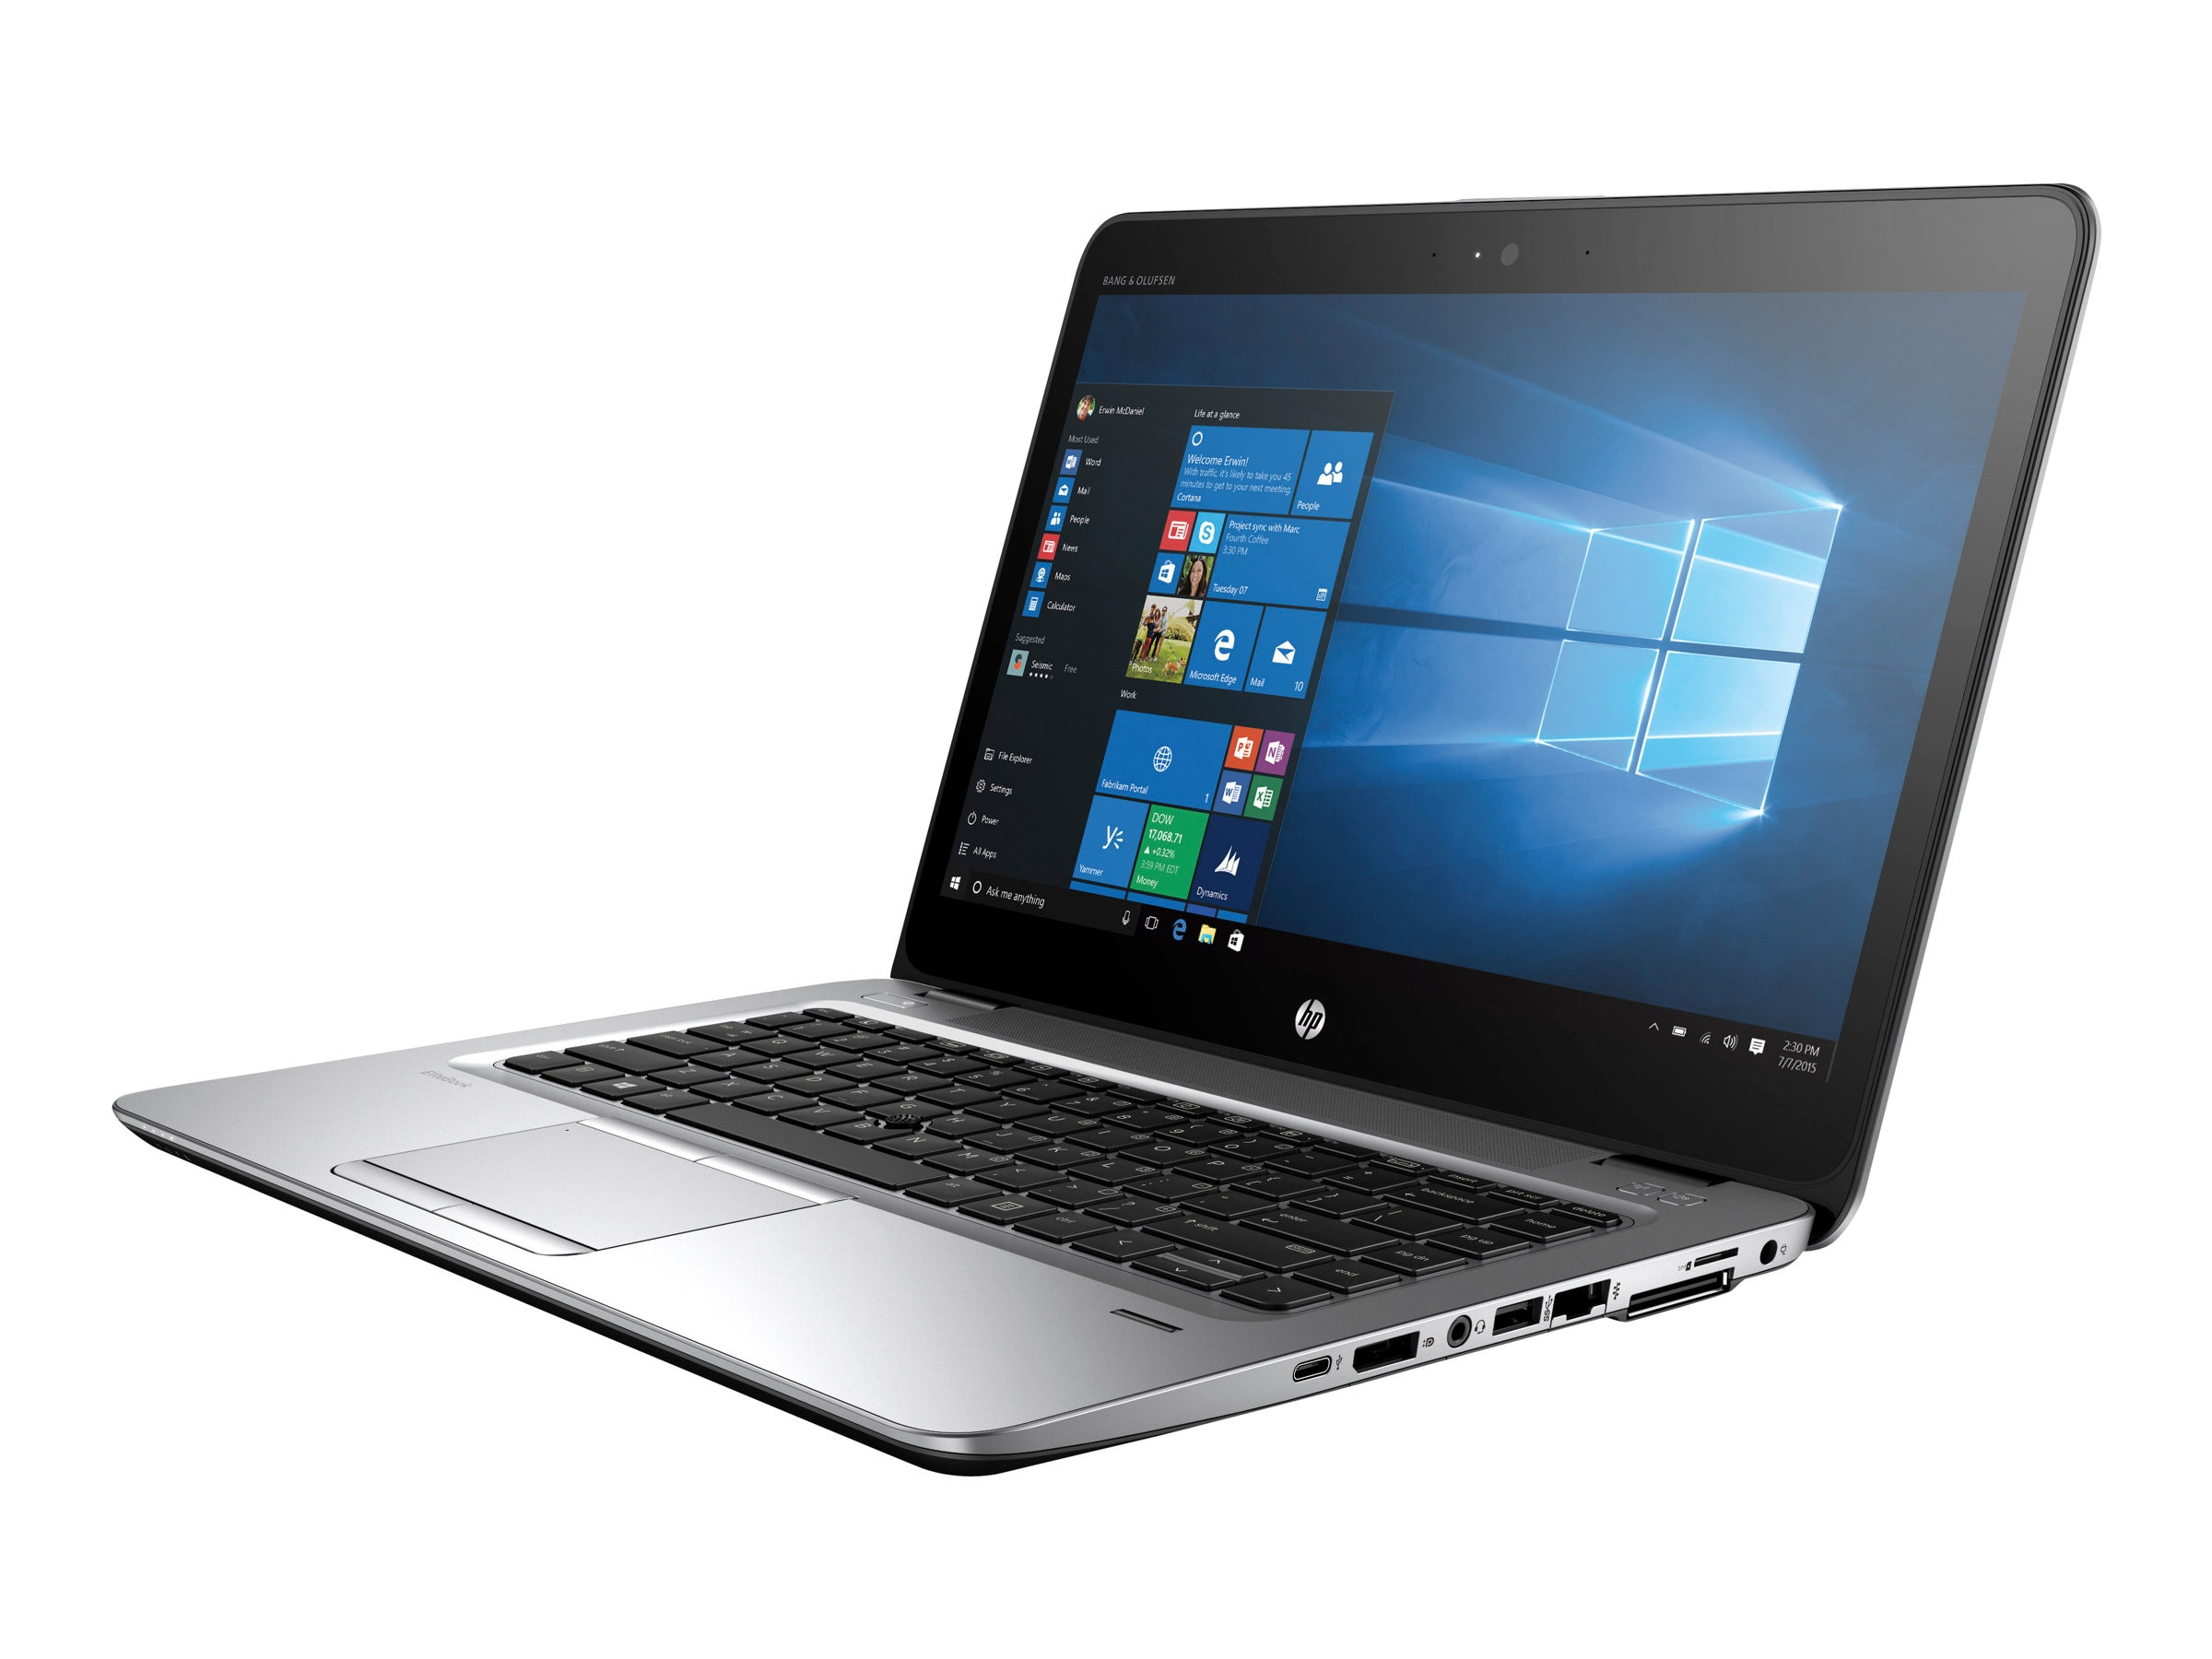 HP EliteBook 840 G3 2.6GHz Core i7 14in display